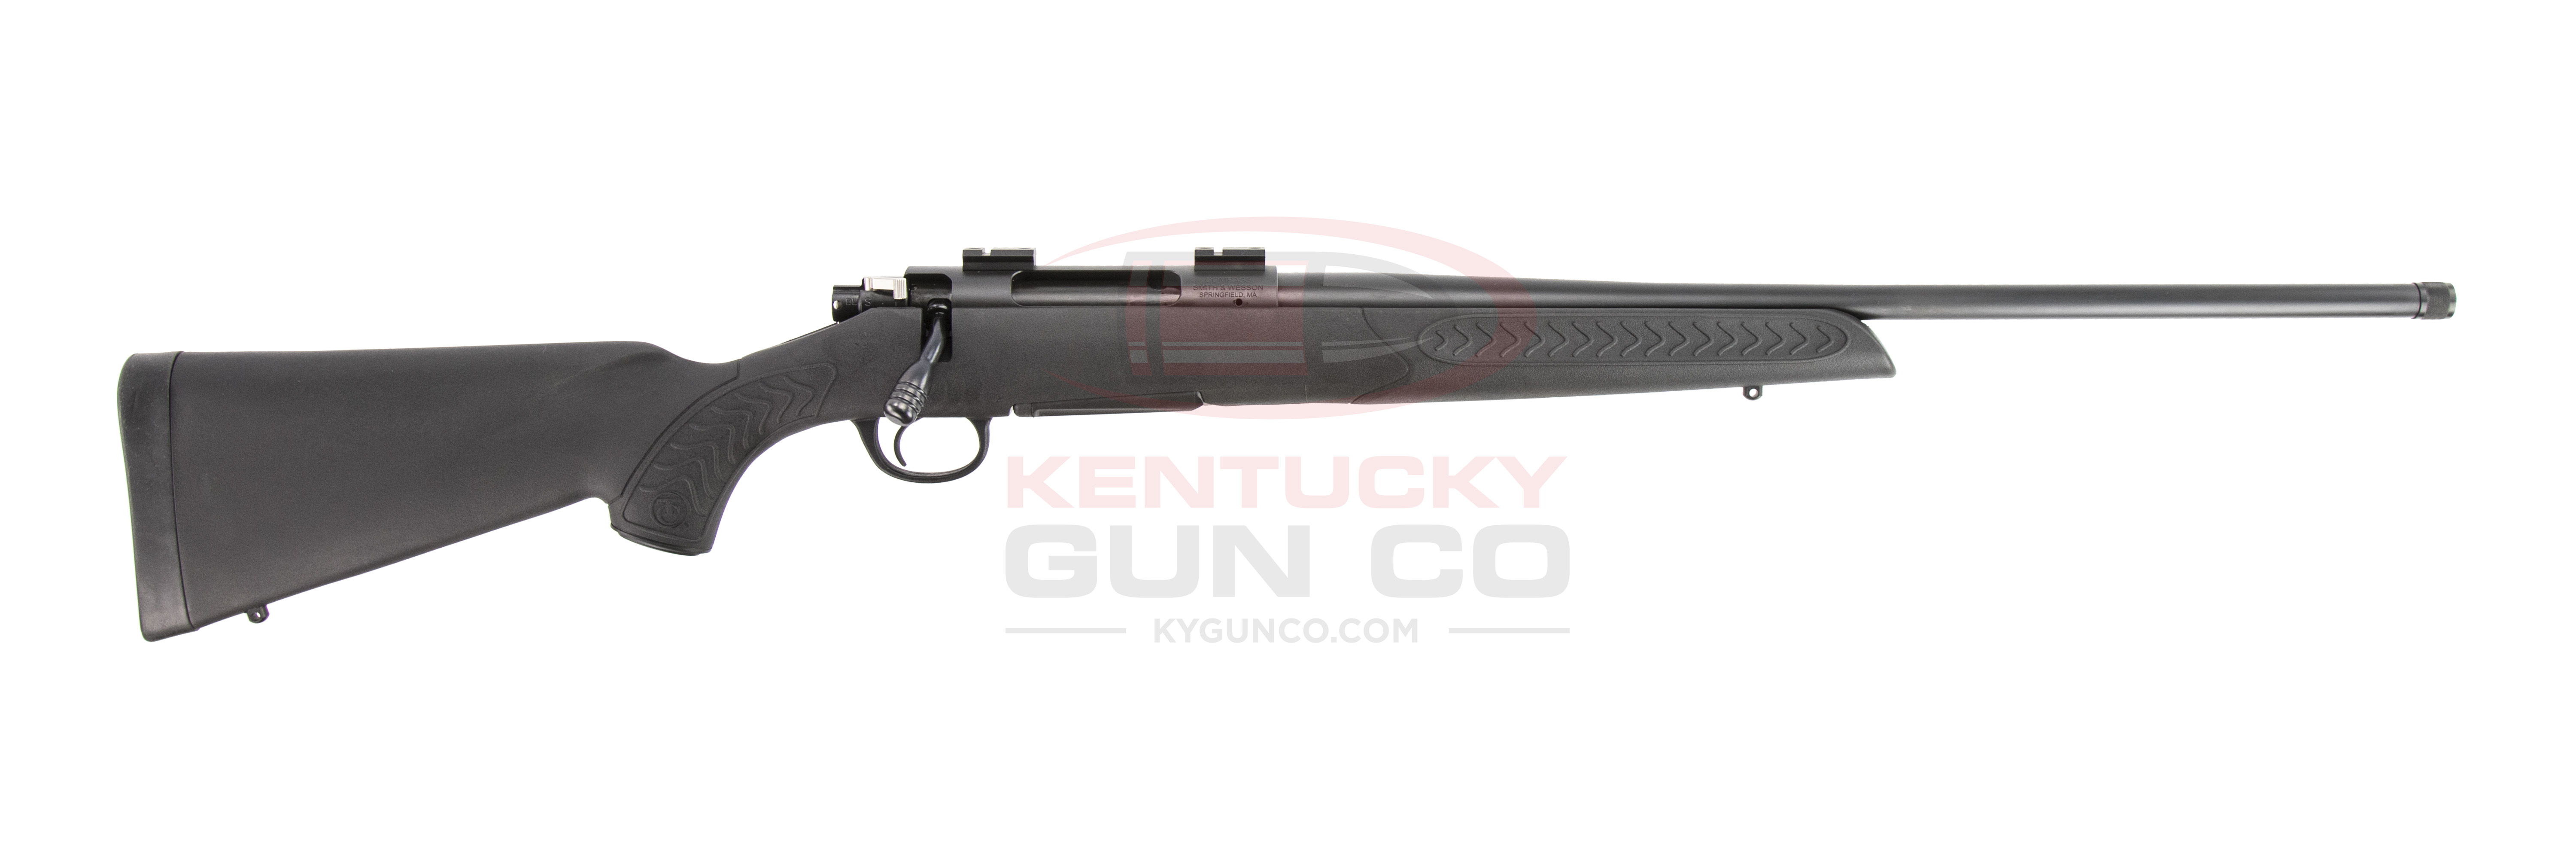 "Compass Rifle .308 Win 22"" TB"